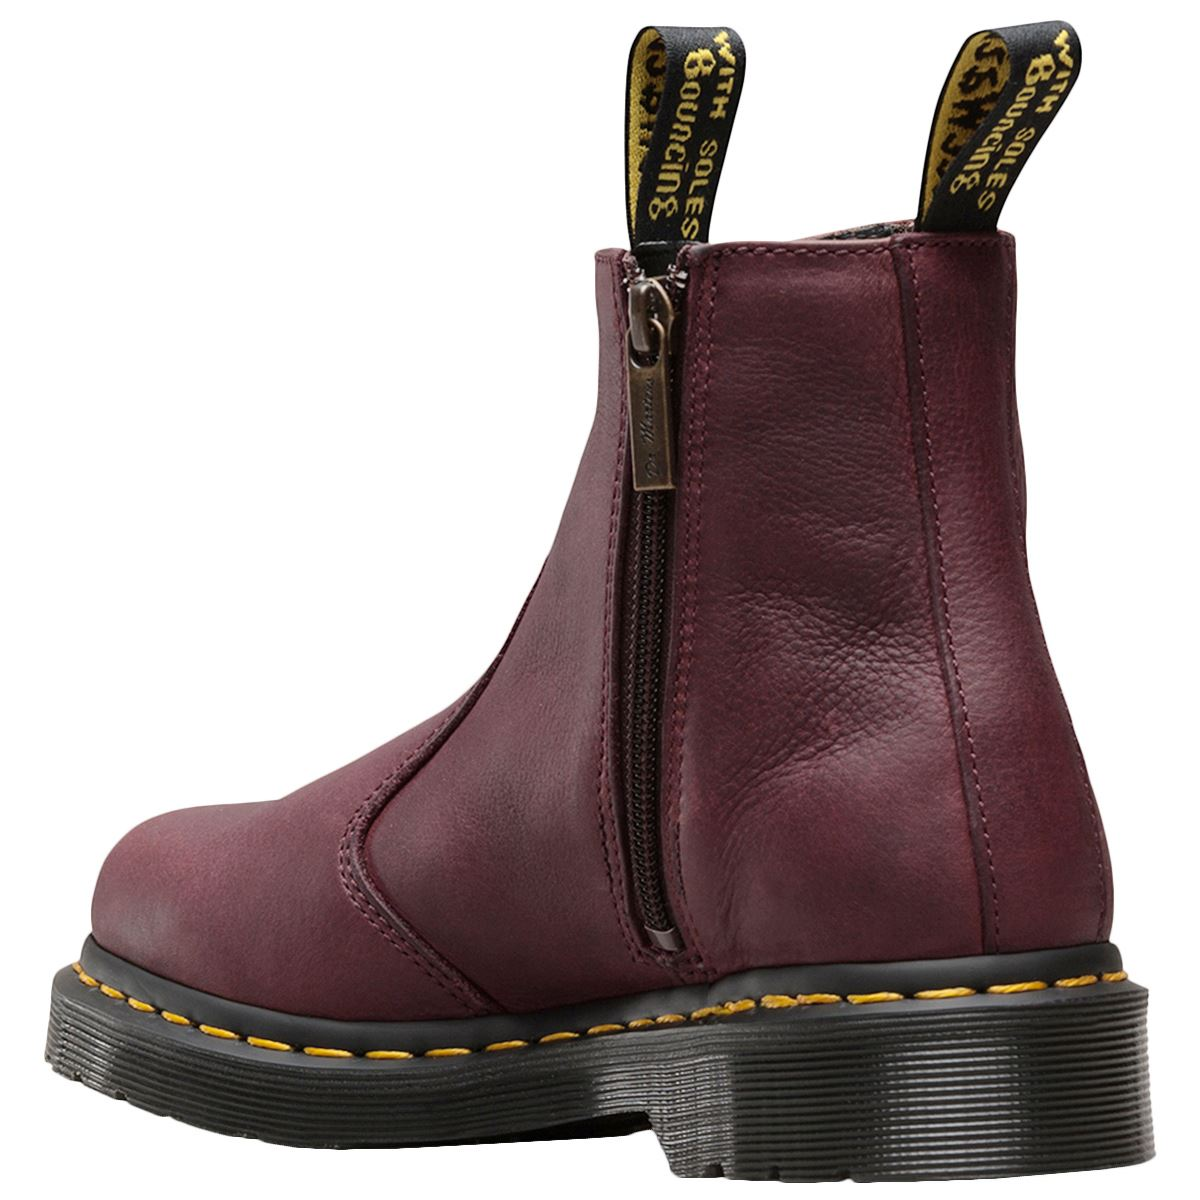 Dr.Martens 2976 W Zips Leather Casual Ankle Ankle Ankle Biker Womens Boots 1d3a56